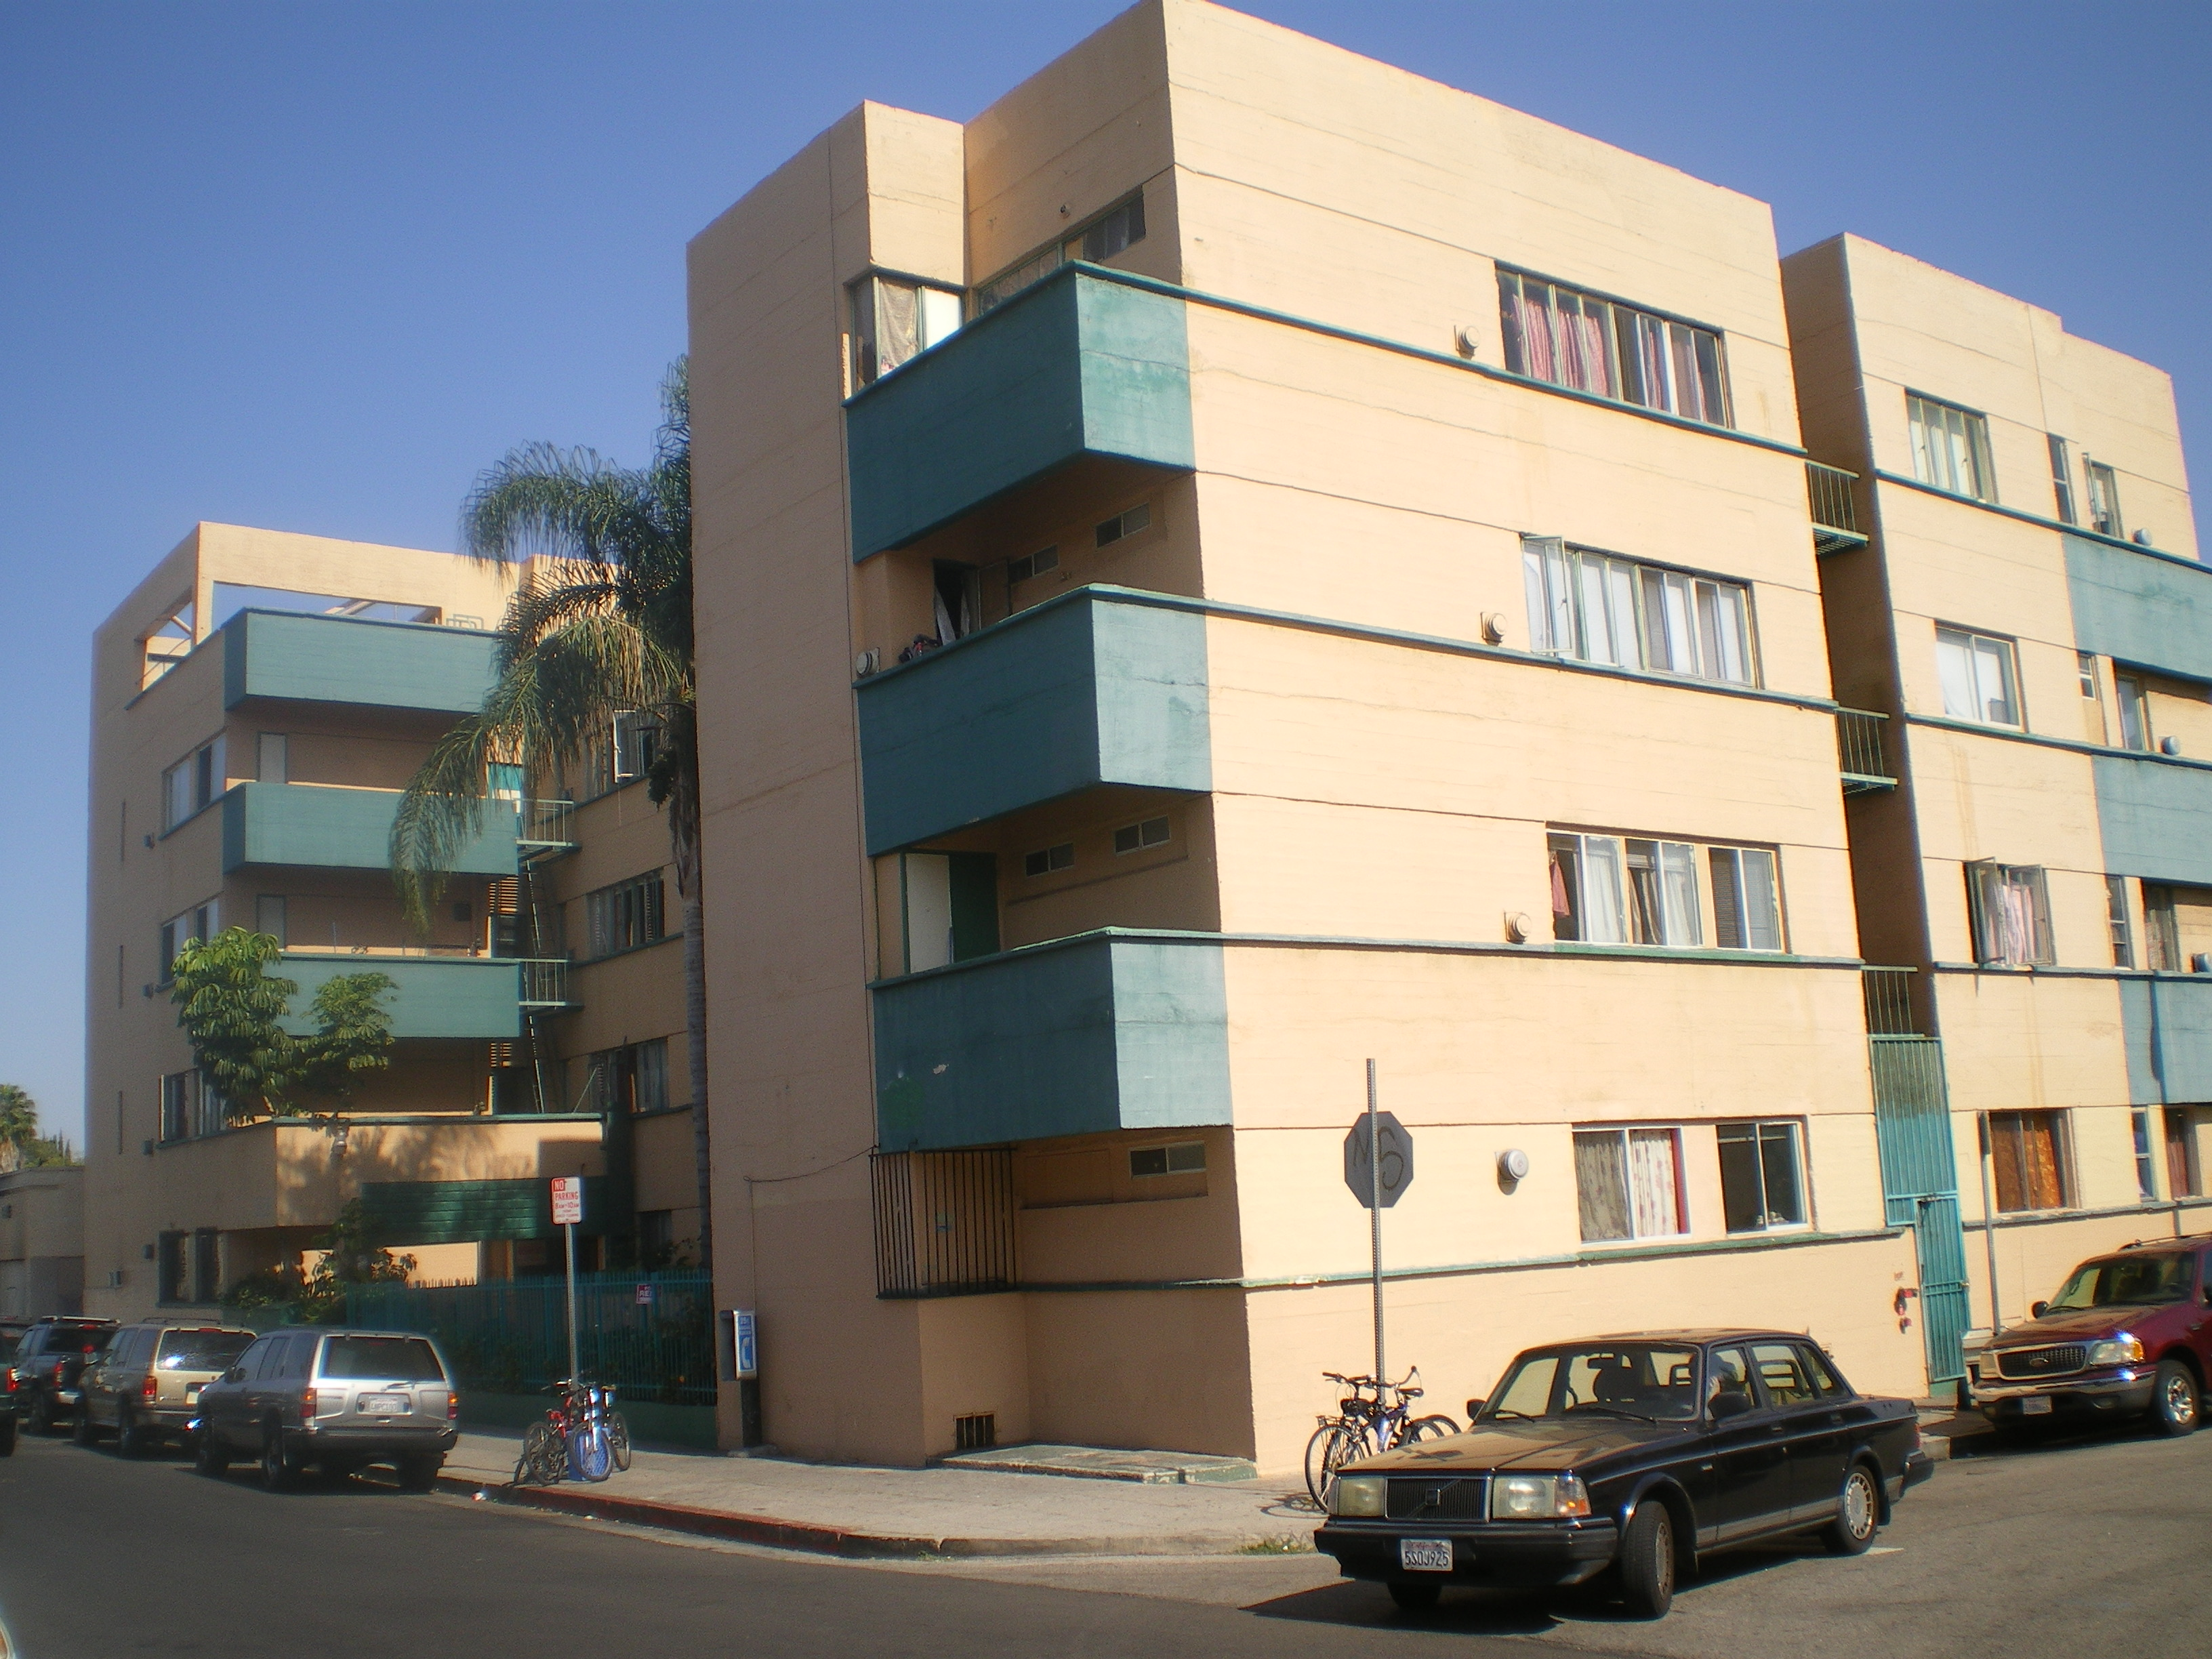 Cheap Apartments In El Cajon Ca